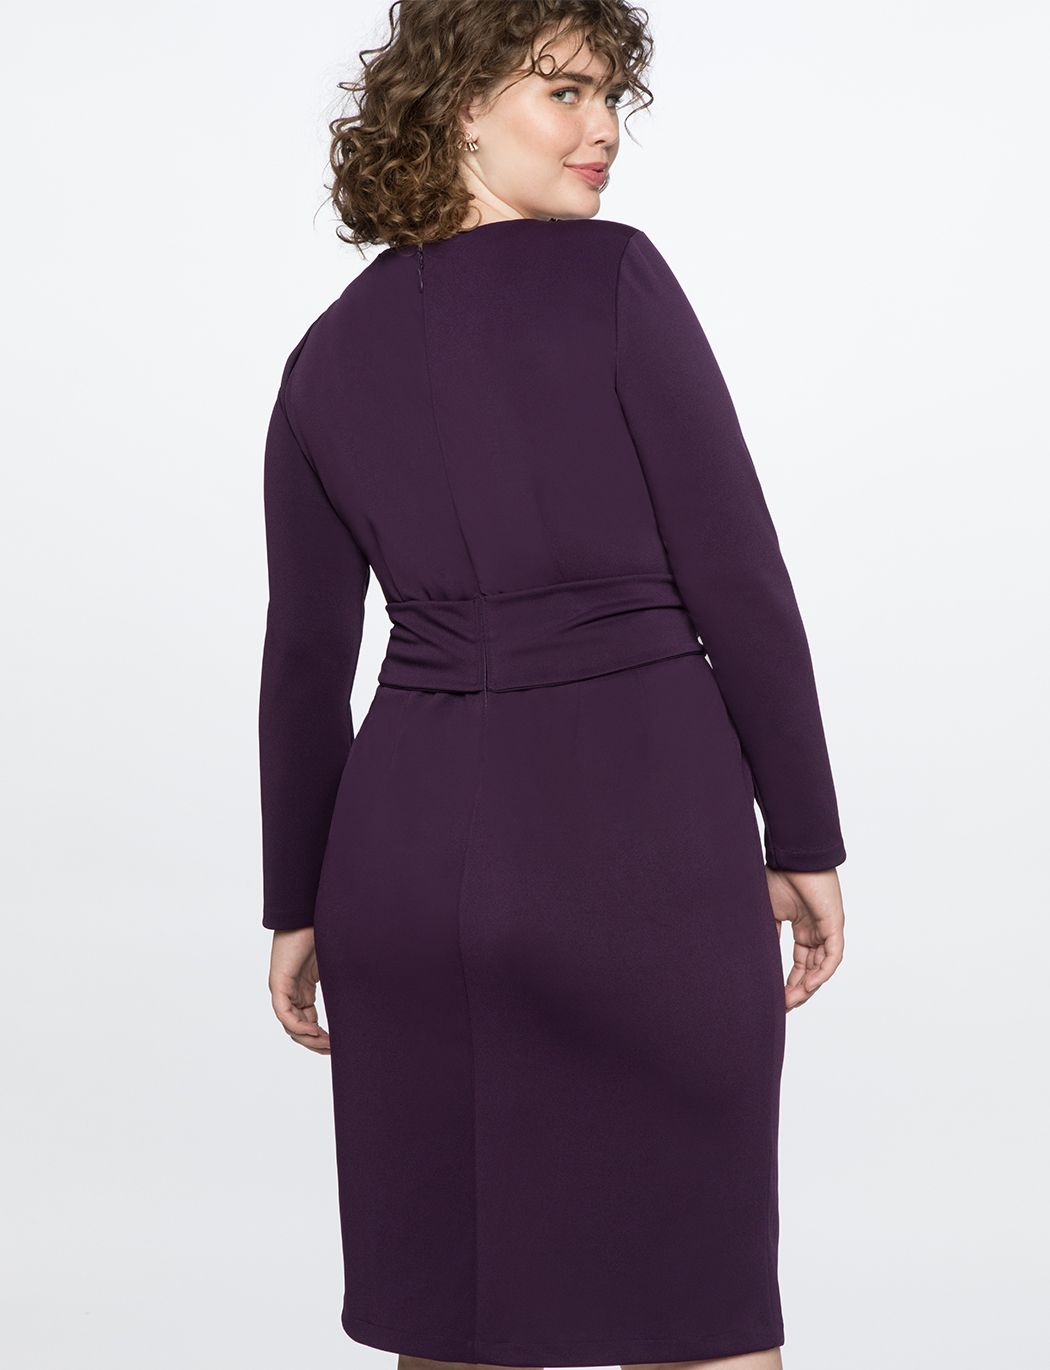 27784a23dfc Long Sleeve Scuba Dress with Tie Imperial Purple